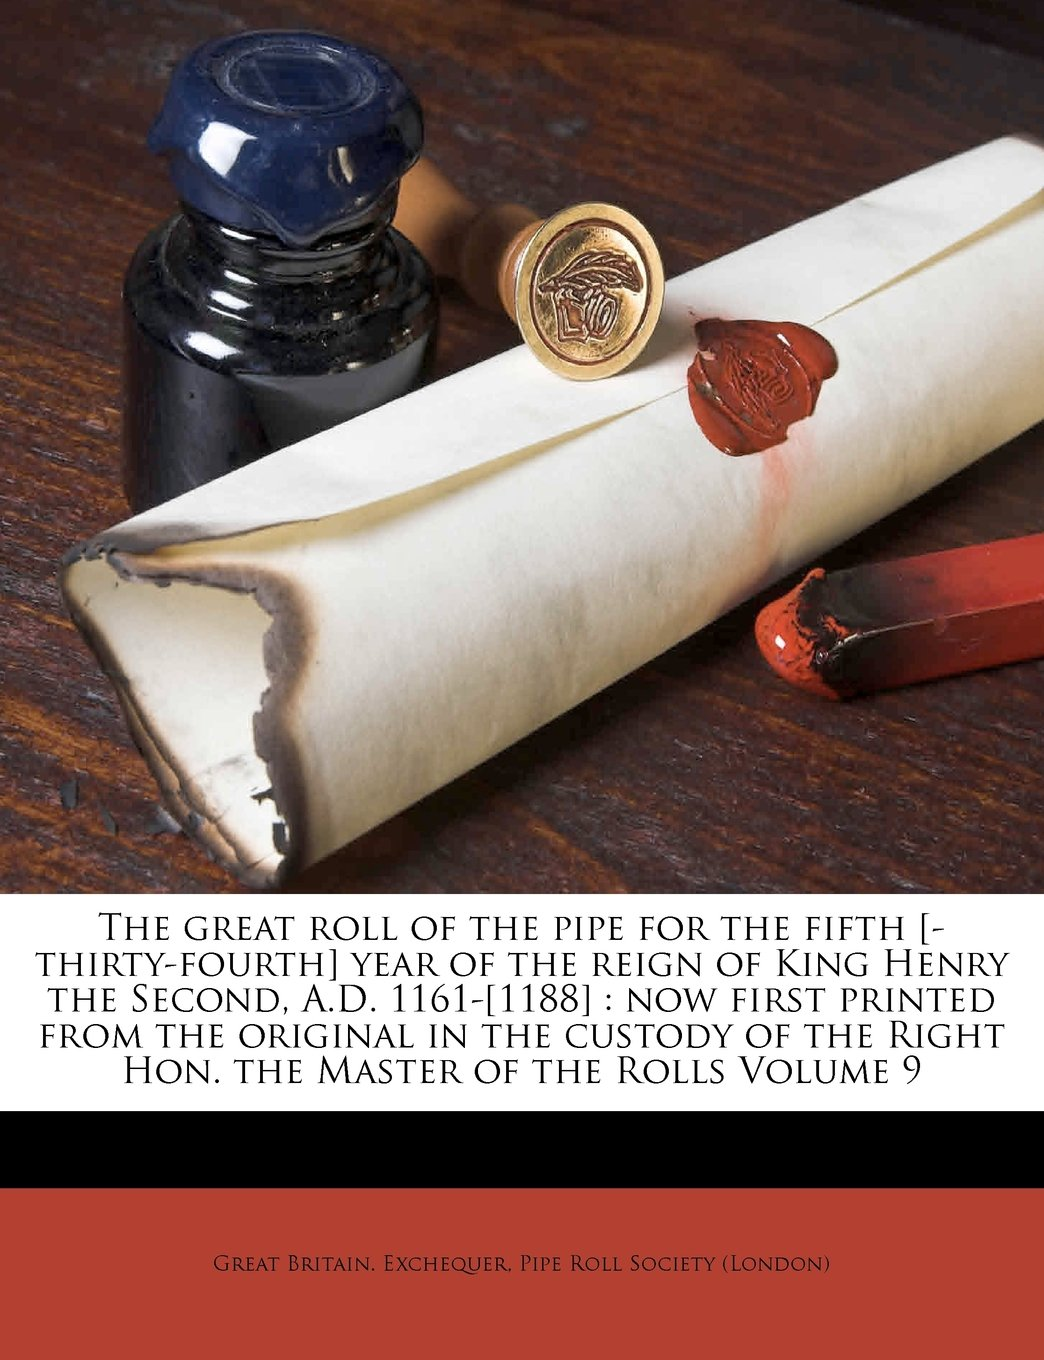 Read Online The great roll of the pipe for the fifth [-thirty-fourth] year of the reign of King Henry the Second, A.D. 1161-[1188]: now first printed from the ... Master of the Rolls Volume 9 (Latin Edition) PDF